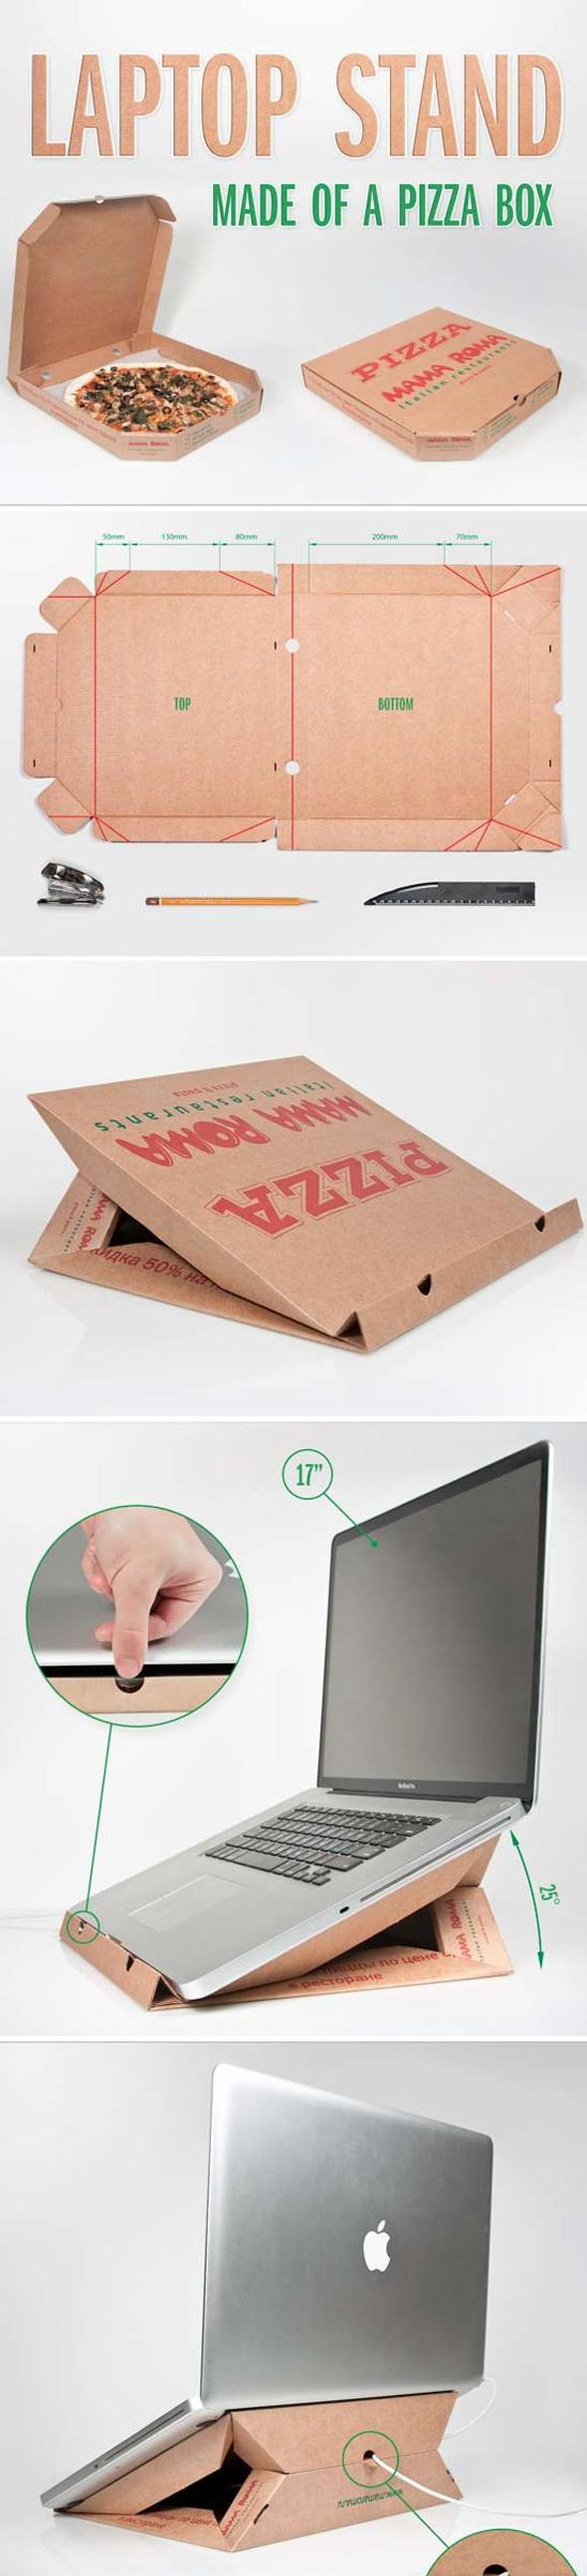 laptop-stand-pizzza-box